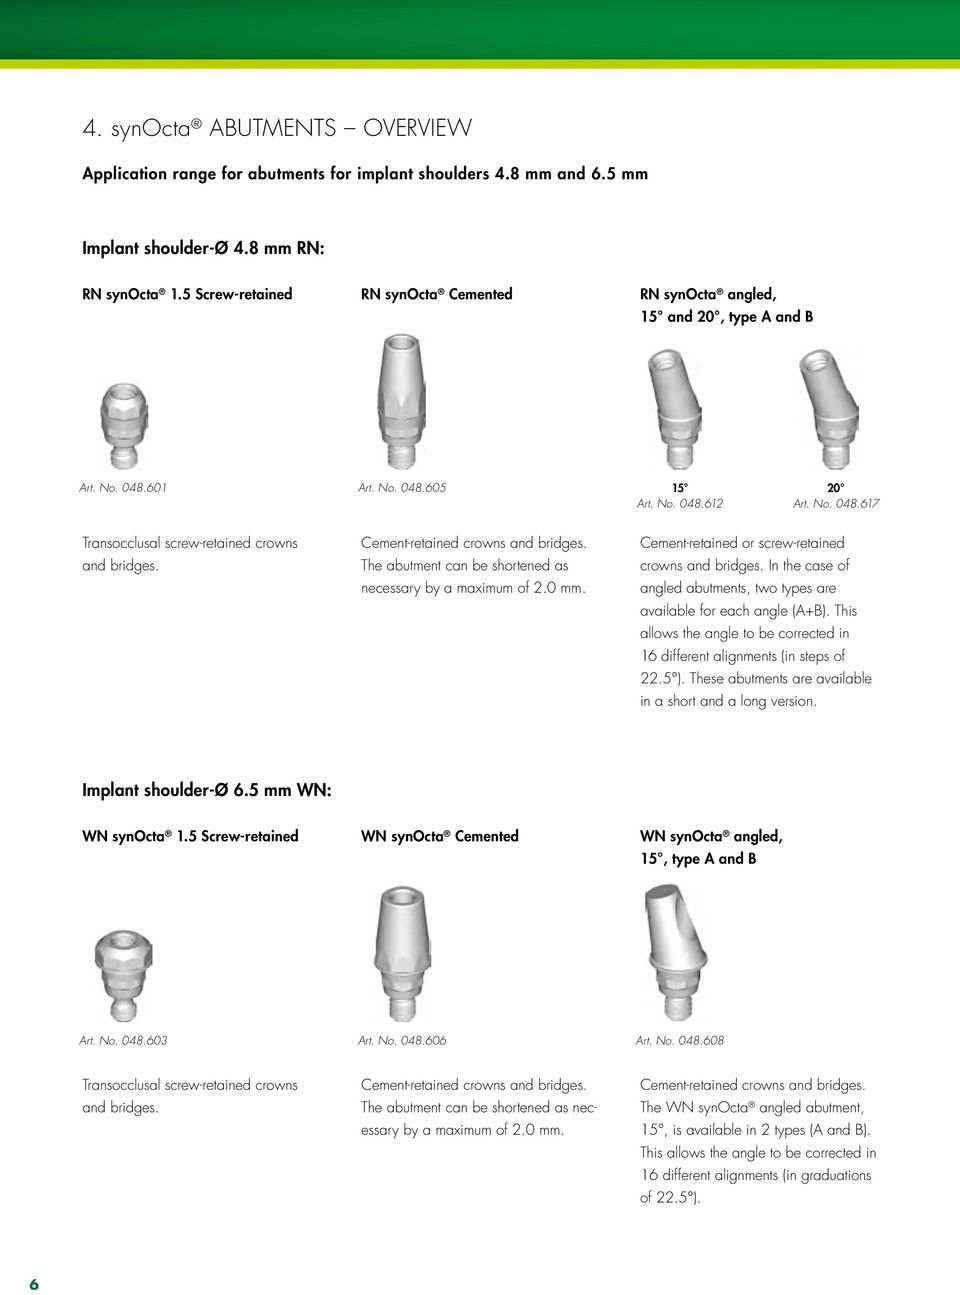 Cement-retained crowns and bridges. The abutment can be shortened as necessary by a maximum of 2.0 mm. Cement-retained or screw-retained crowns and bridges.